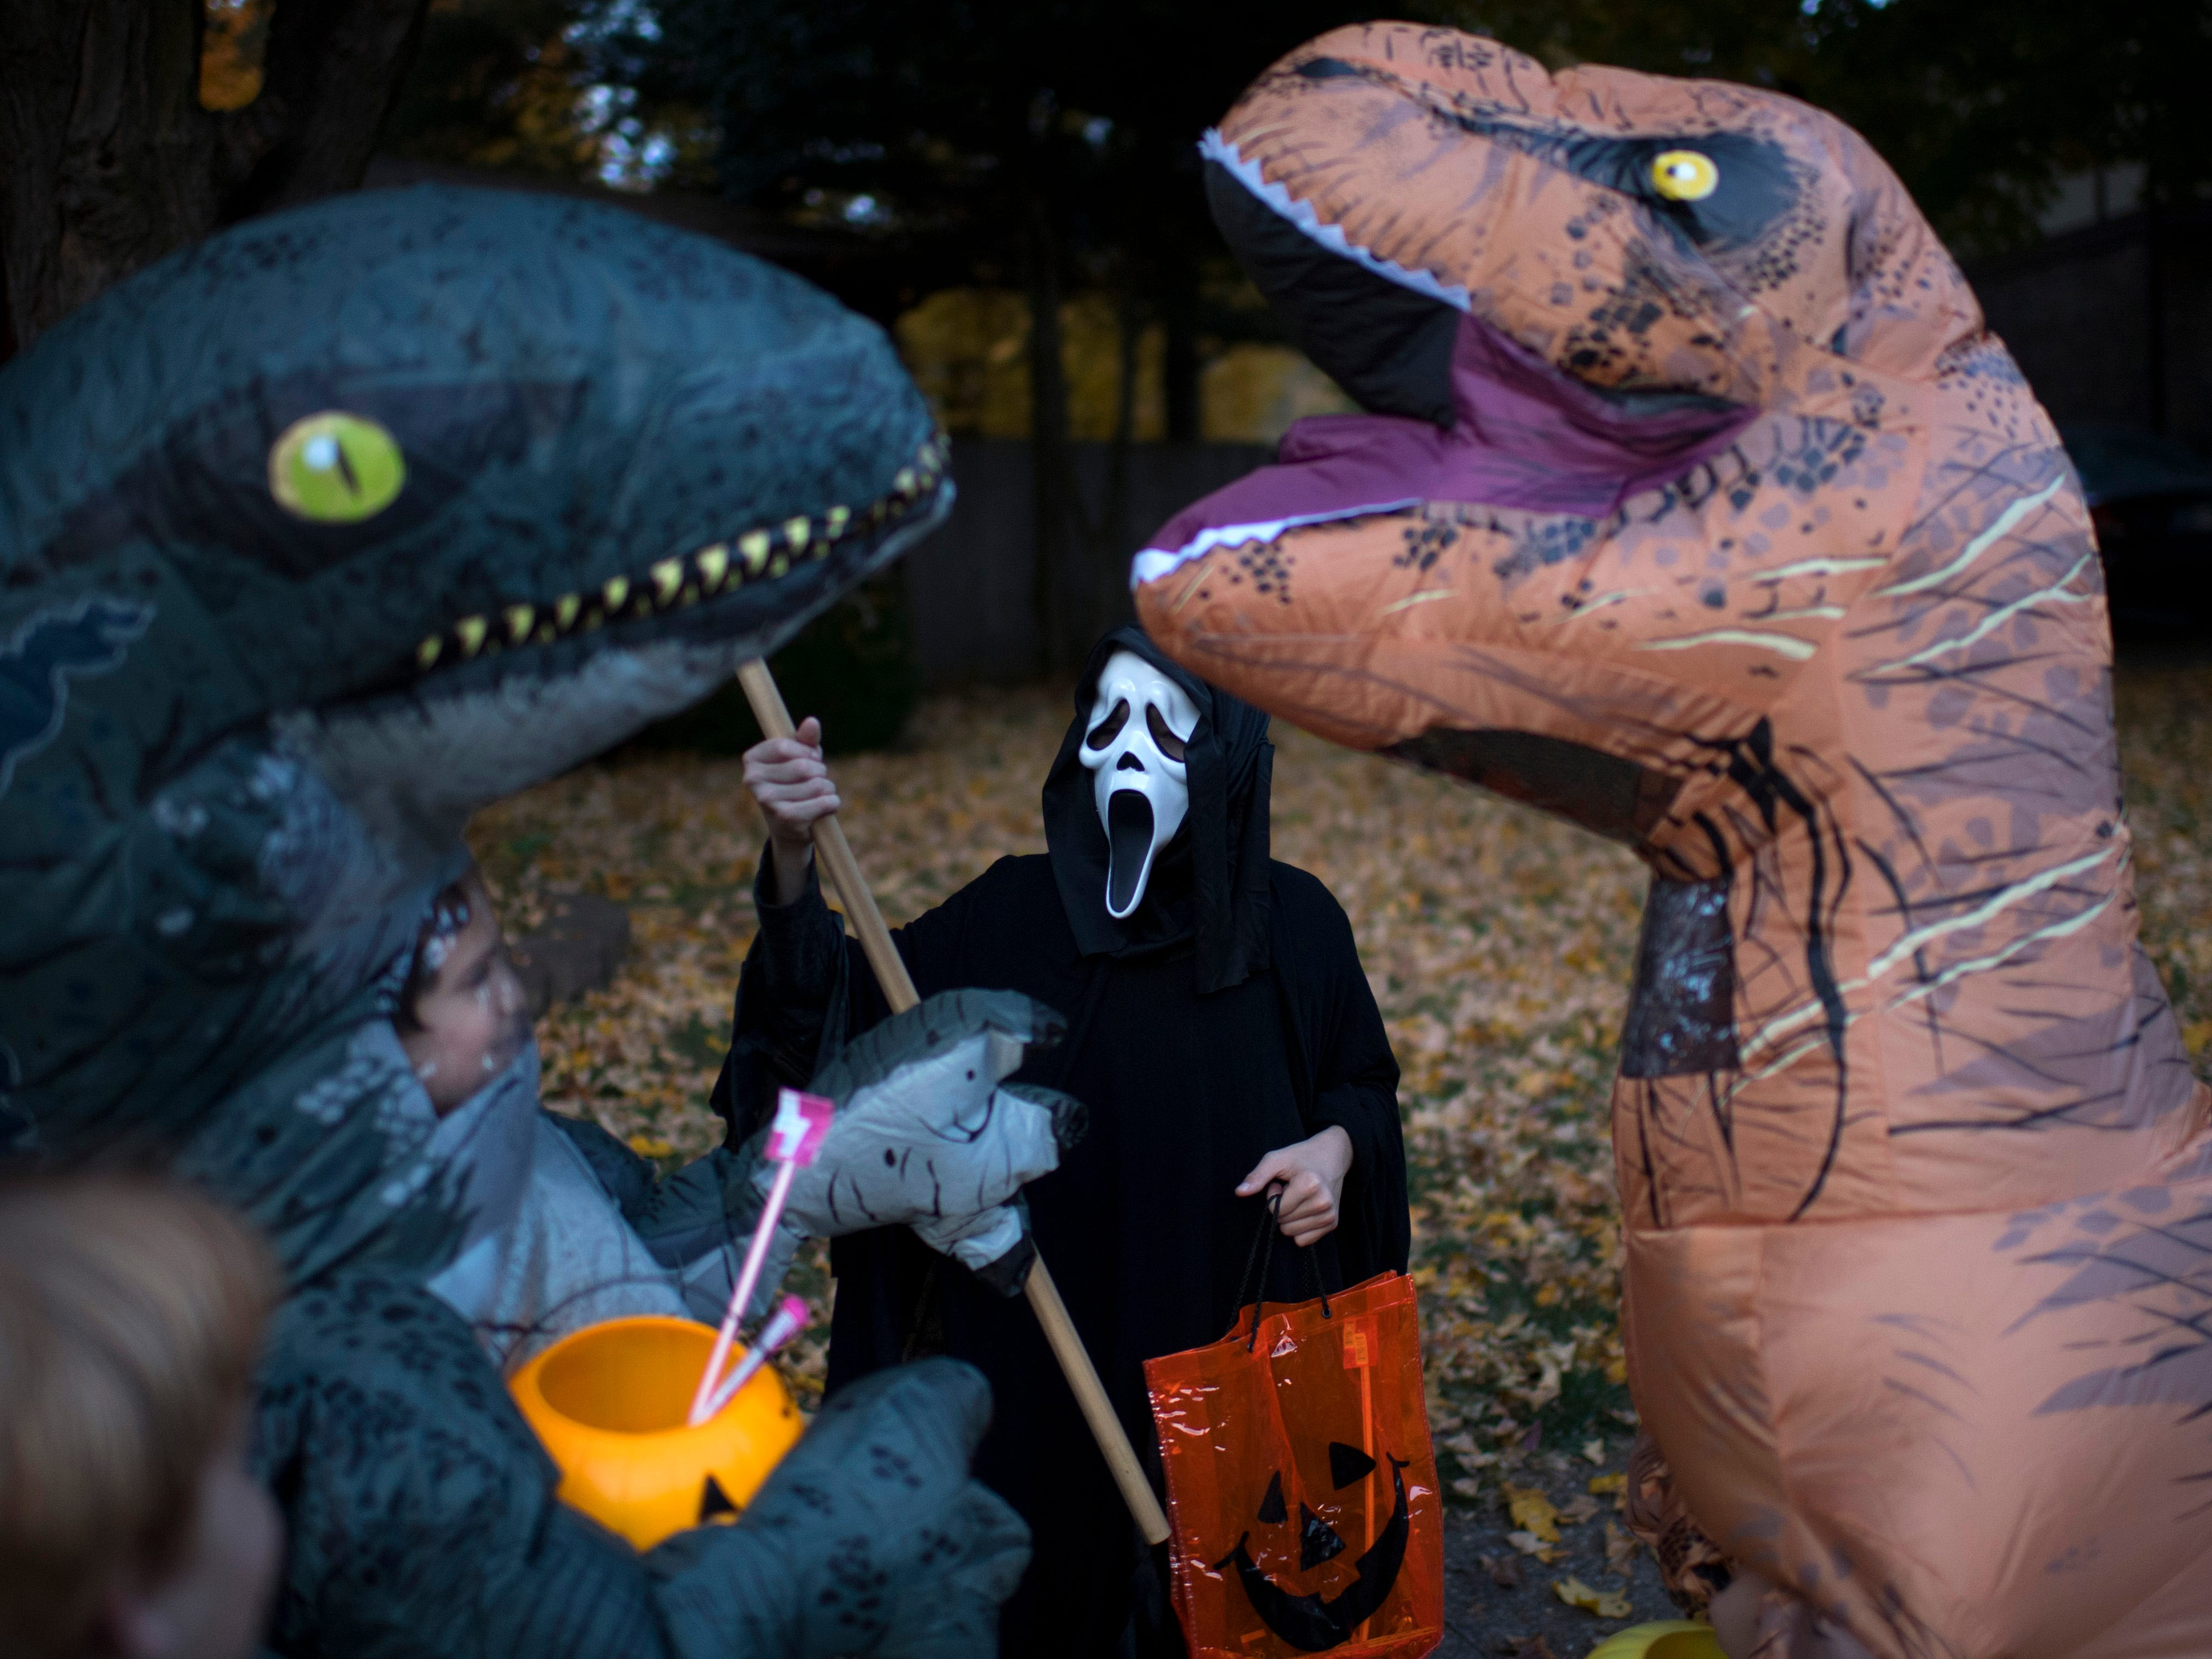 The streets of Newburgh, Ind., were chocked full of dinosaurs, monsters and Disney princesses as Halloween trick or treating was held a day earlier than usual Tuesday evening. Rain is forecast at a 100-percent chance for Halloween.